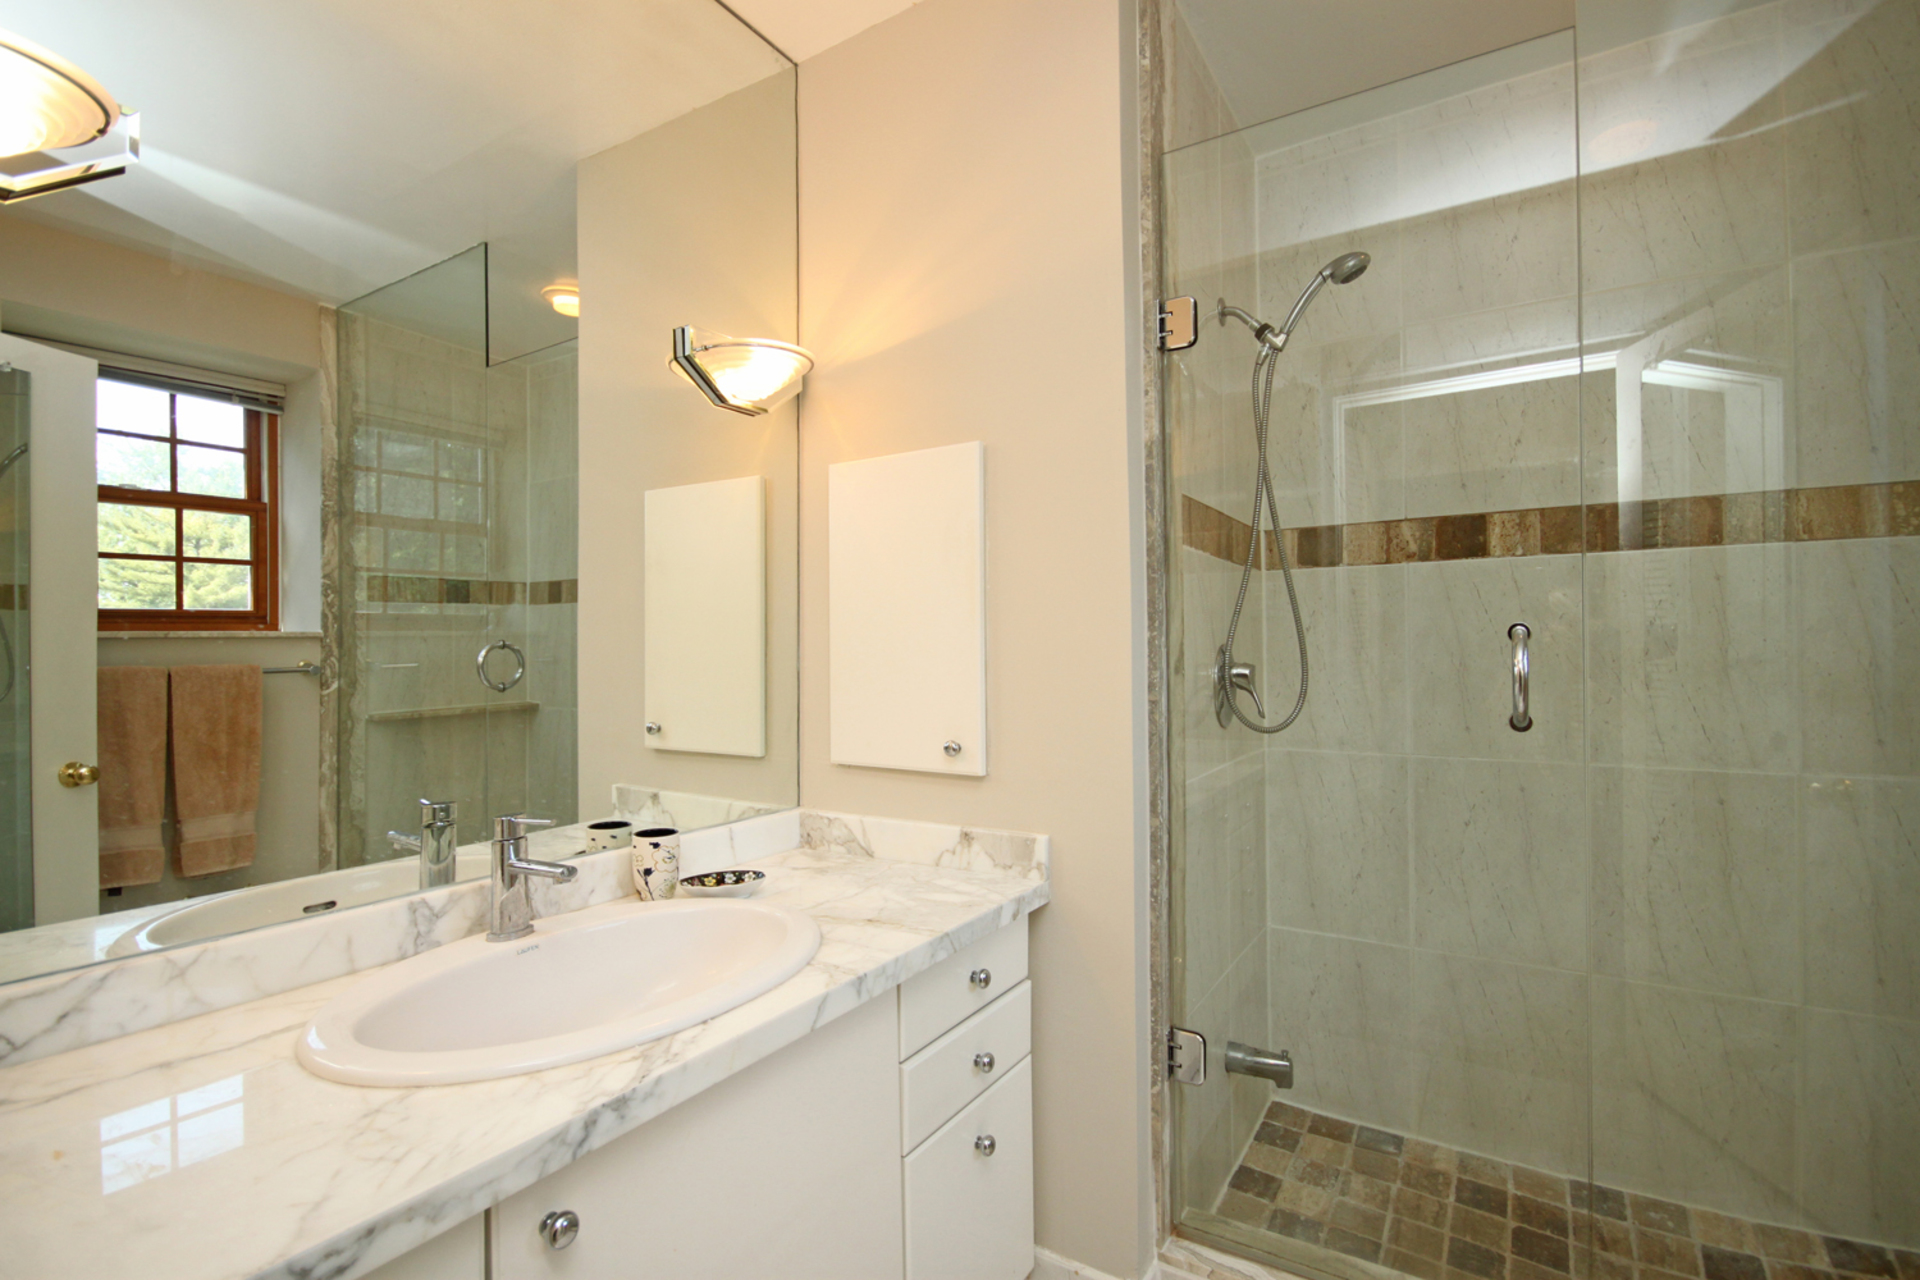 3 Piece Ensuite Bathroom at 5 Belton Road, Banbury-Don Mills, Toronto